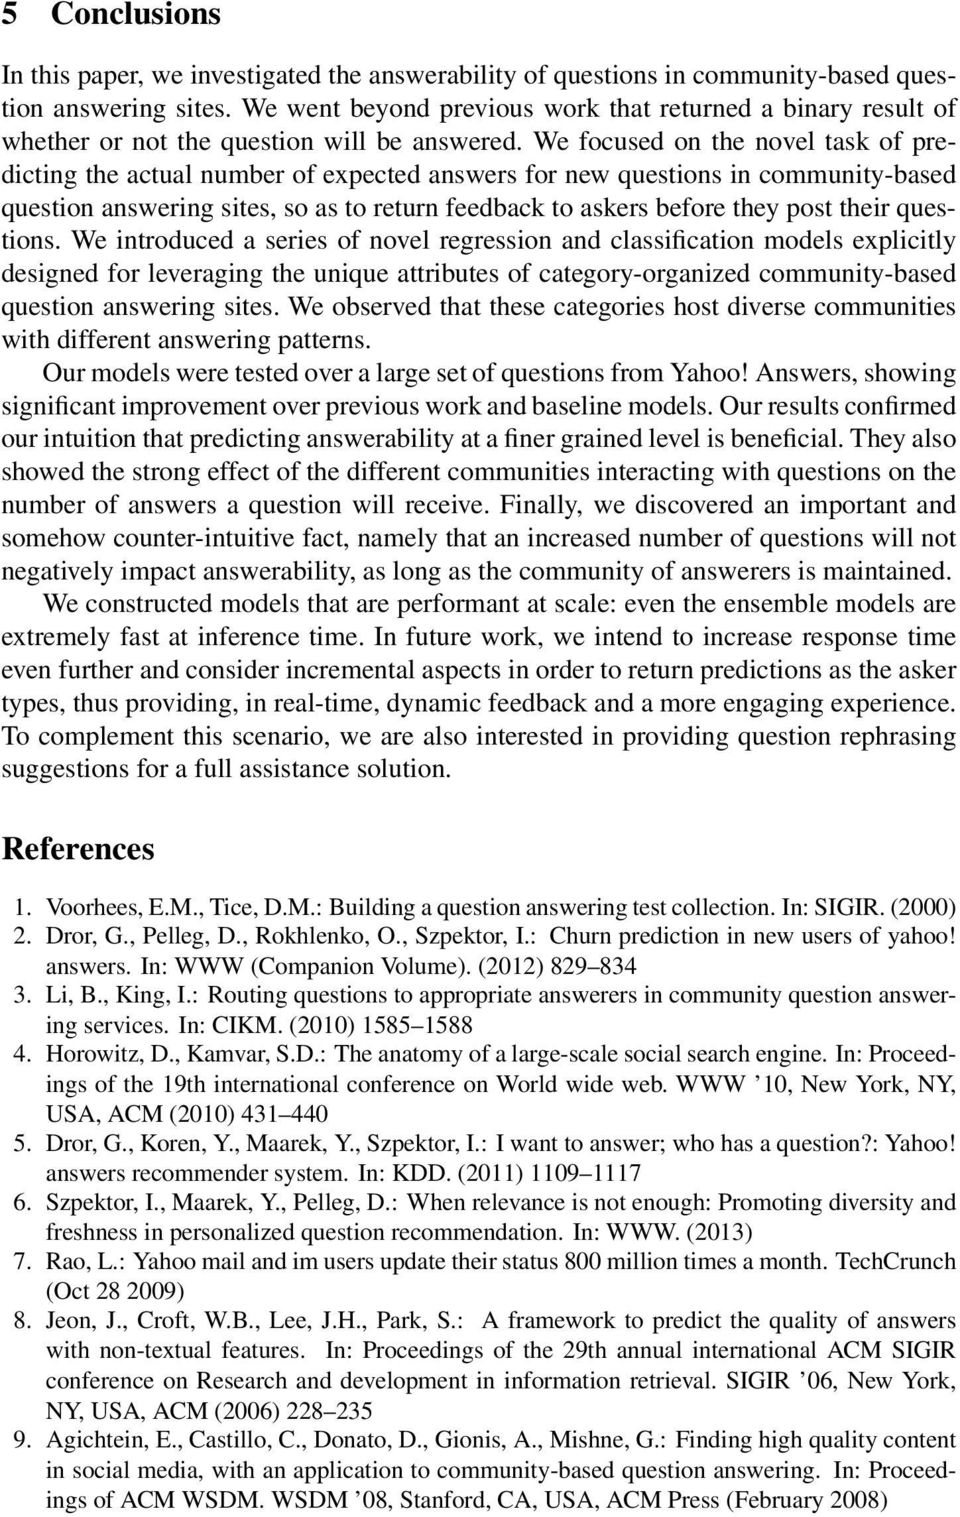 We focused on the novel task of predicting the actual number of expected answers for new questions in community-based question answering sites, so as to return feedback to askers before they post